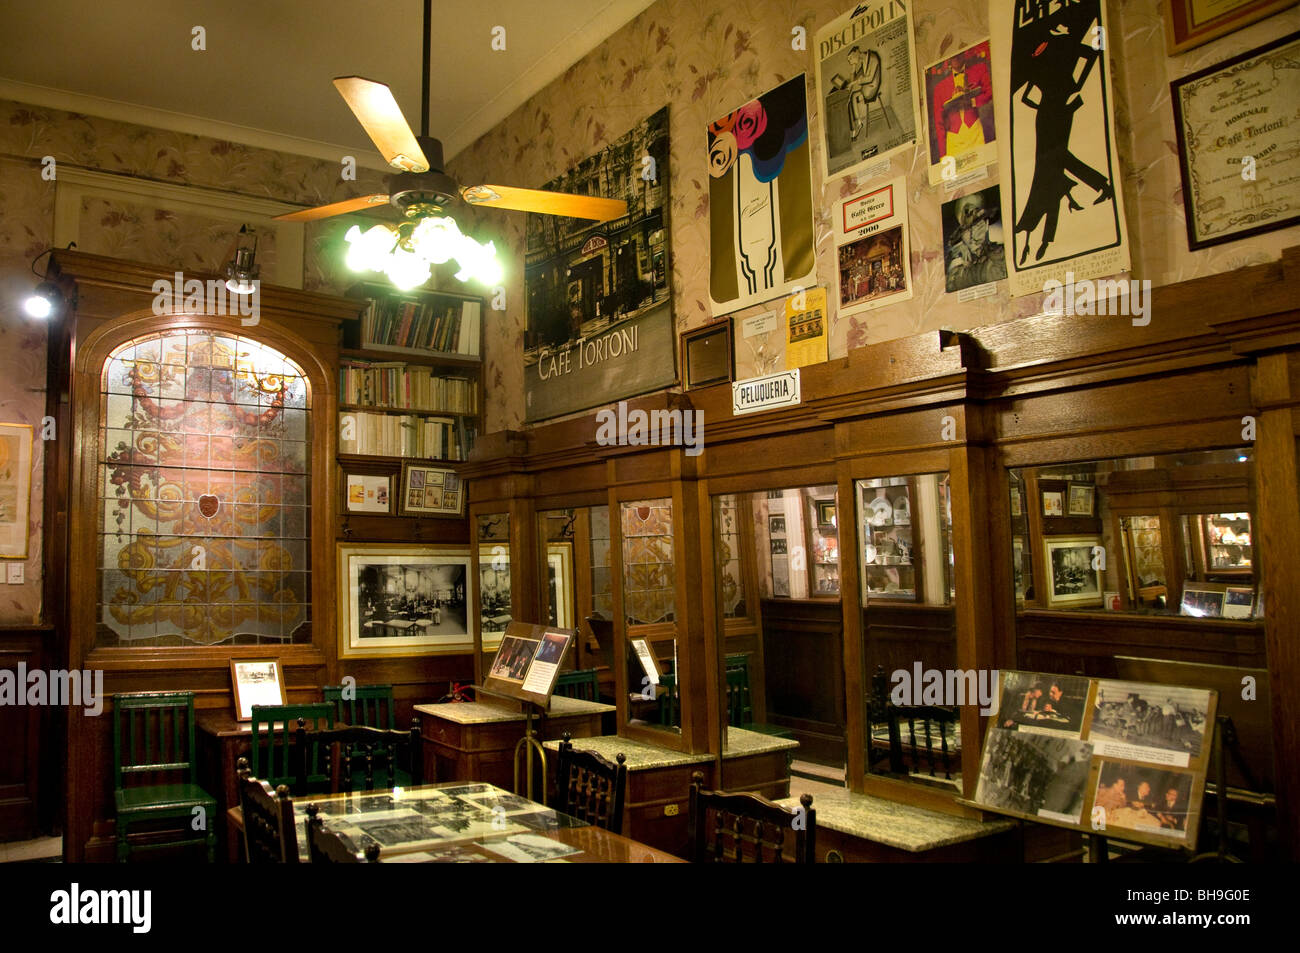 Library gran cafe torini buenos aires argentina town city for Artistic argentinean cuisine